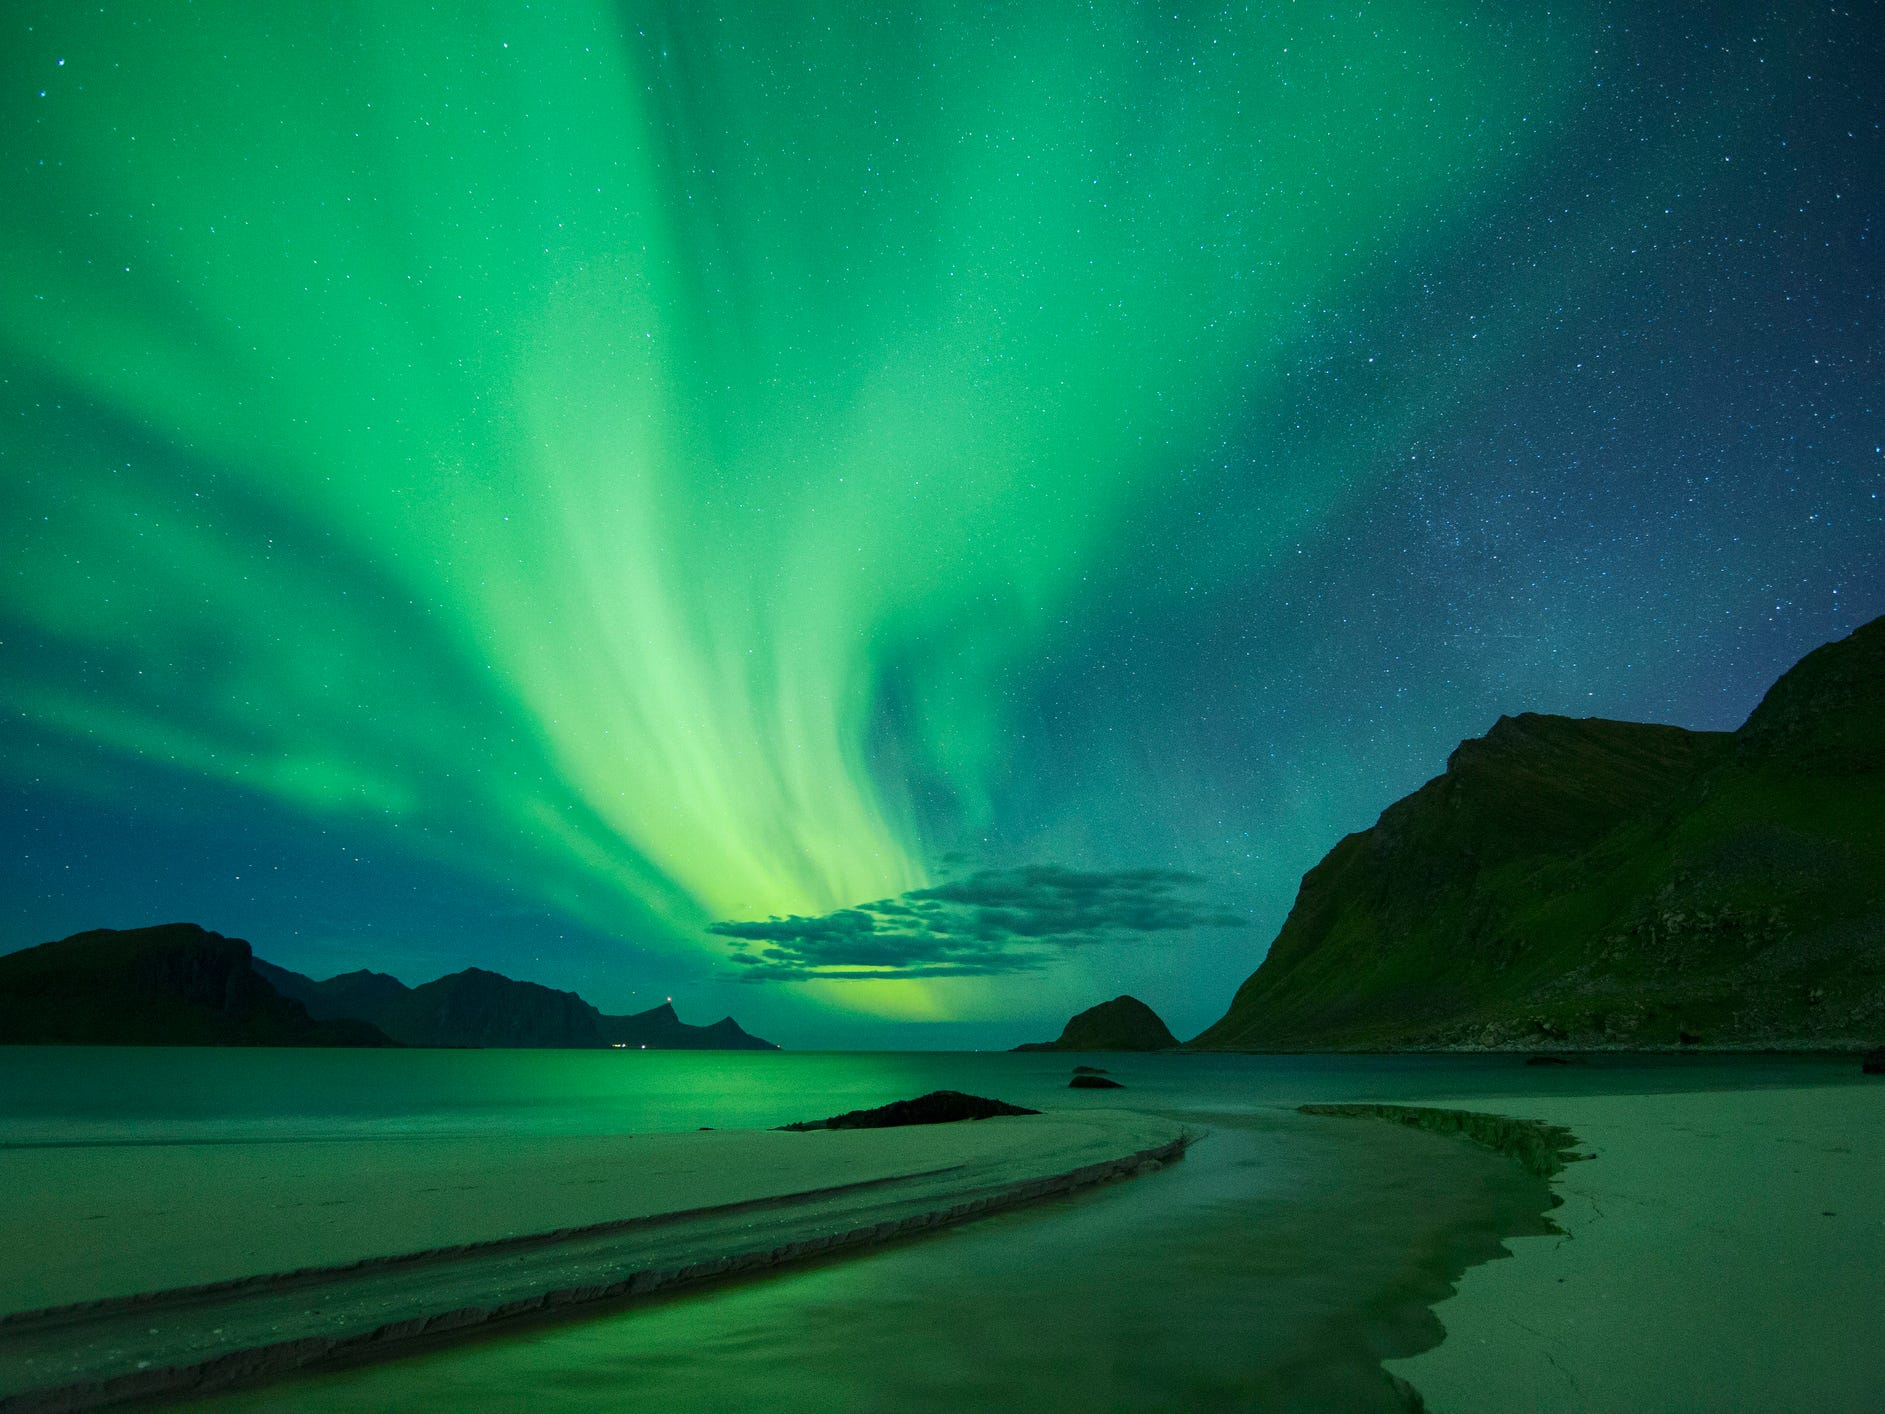 The northern lights in Norway.